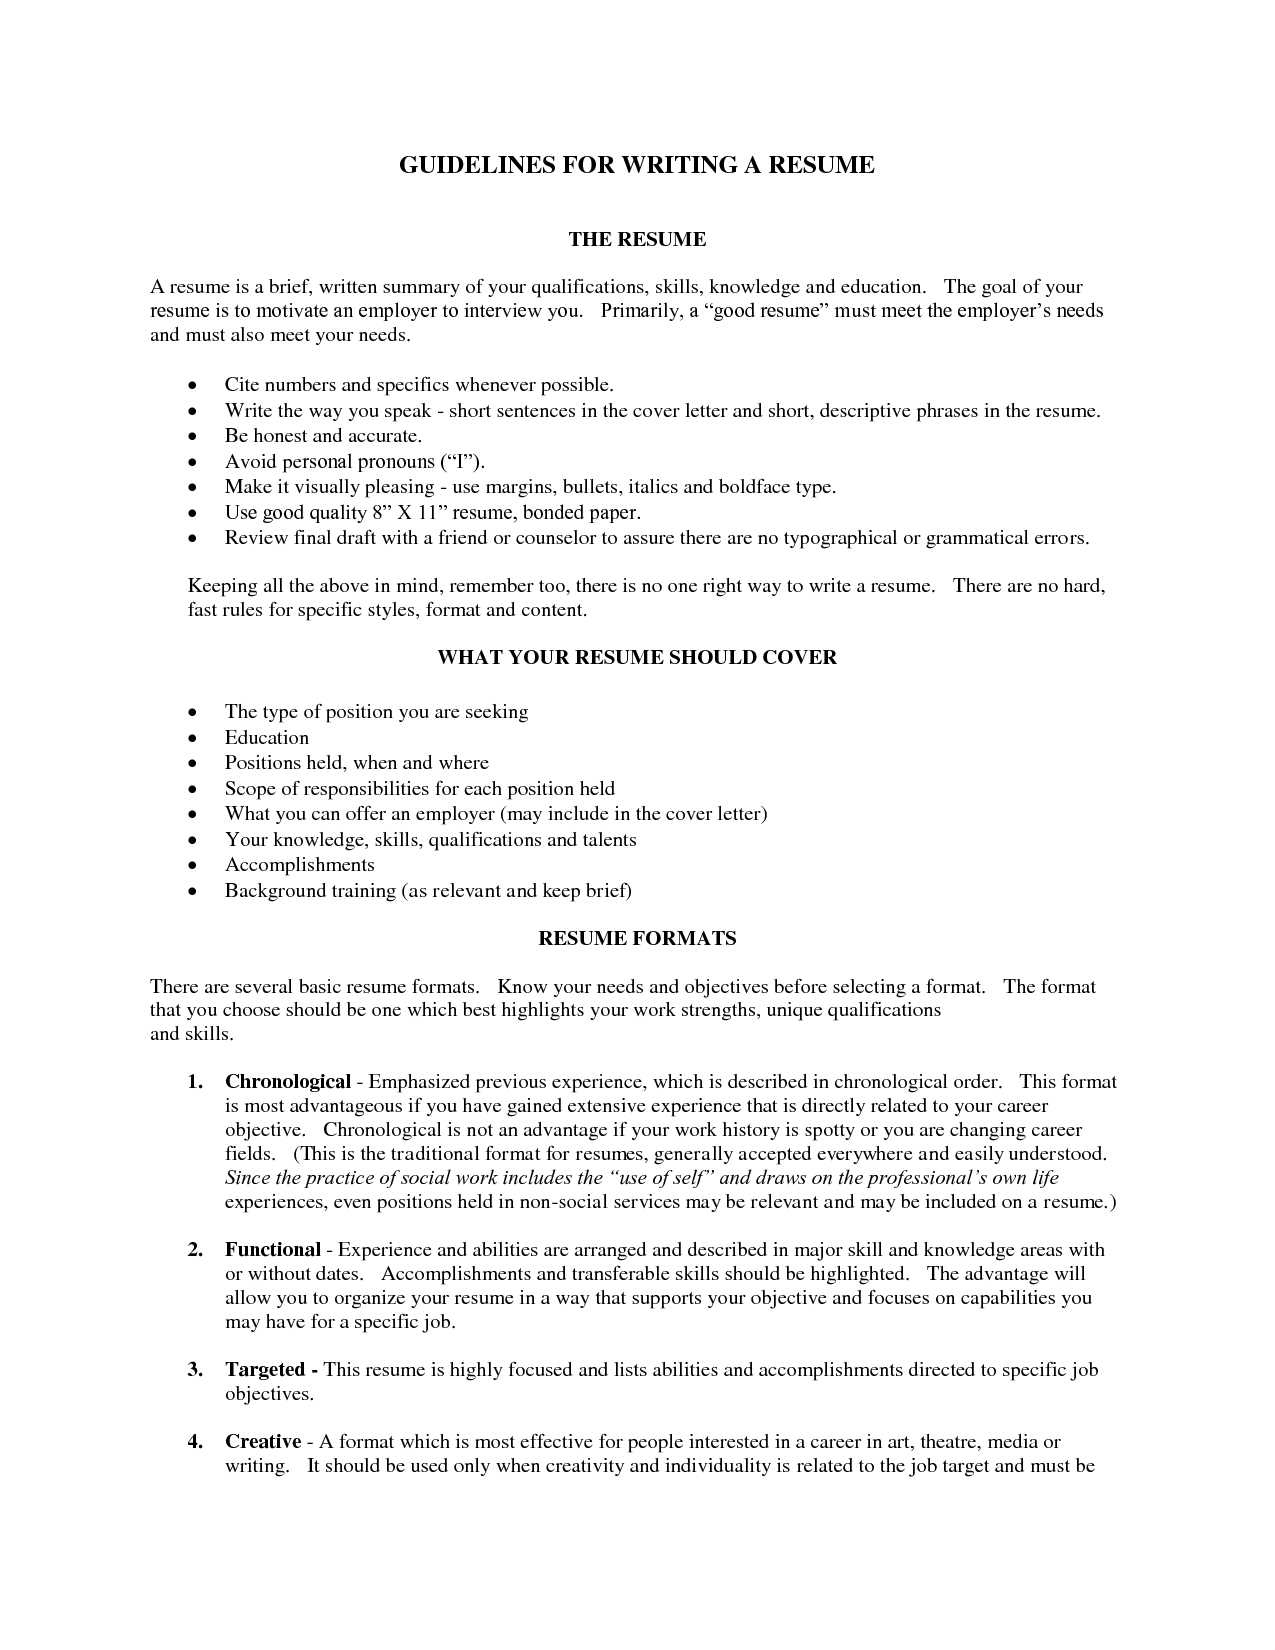 A Summary On A Resume What Is A Summary Of Qualifications